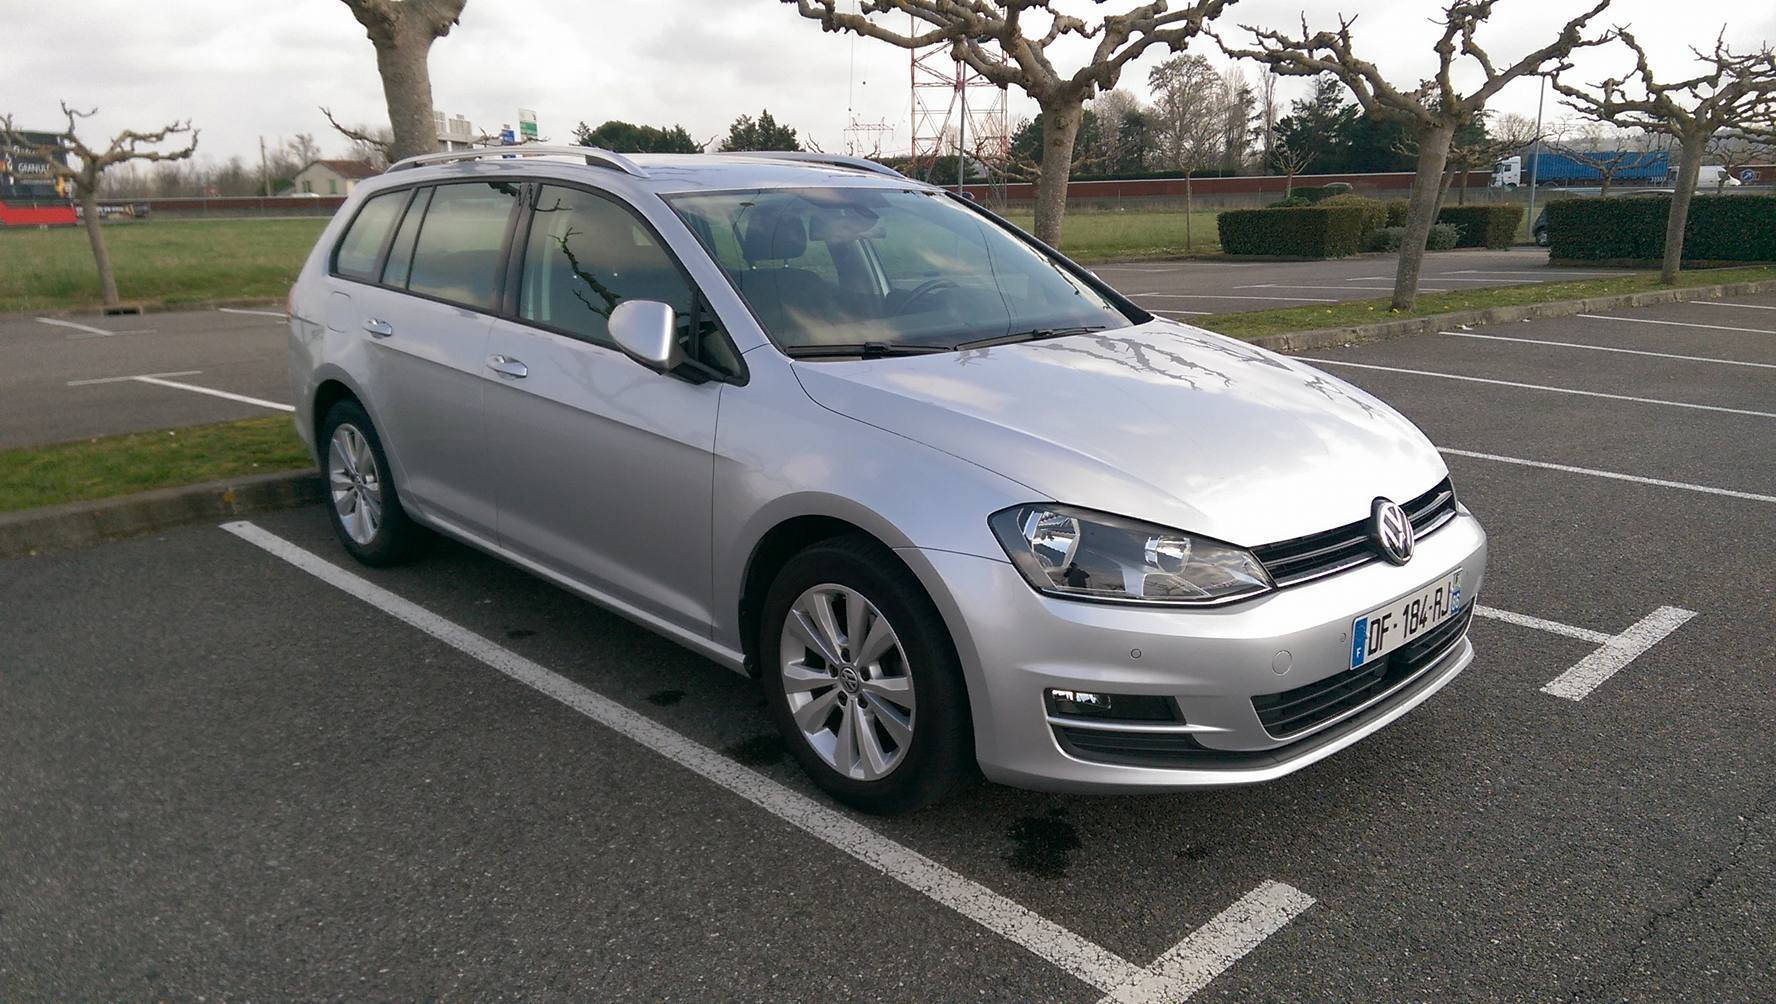 volkswagen golf 7 sw 1 6 tdi 105 bluemotion lot of cars. Black Bedroom Furniture Sets. Home Design Ideas